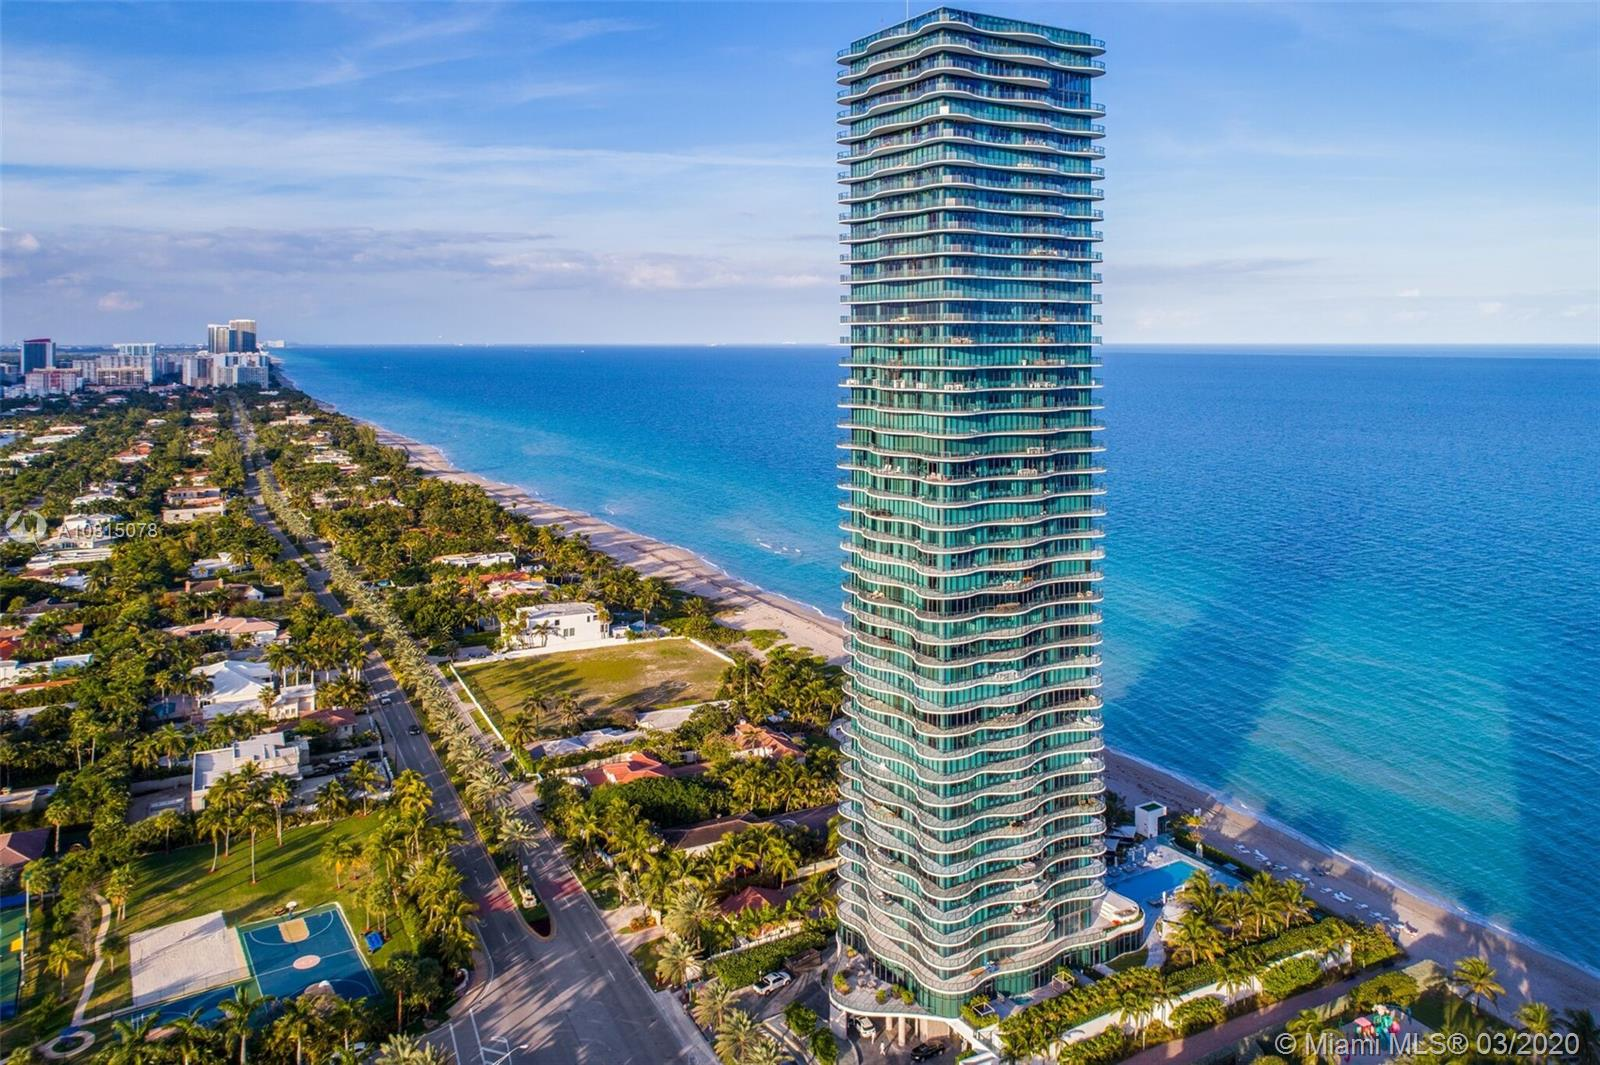 19575 Collins Ave, 9 - Sunny Isles Beach, Florida